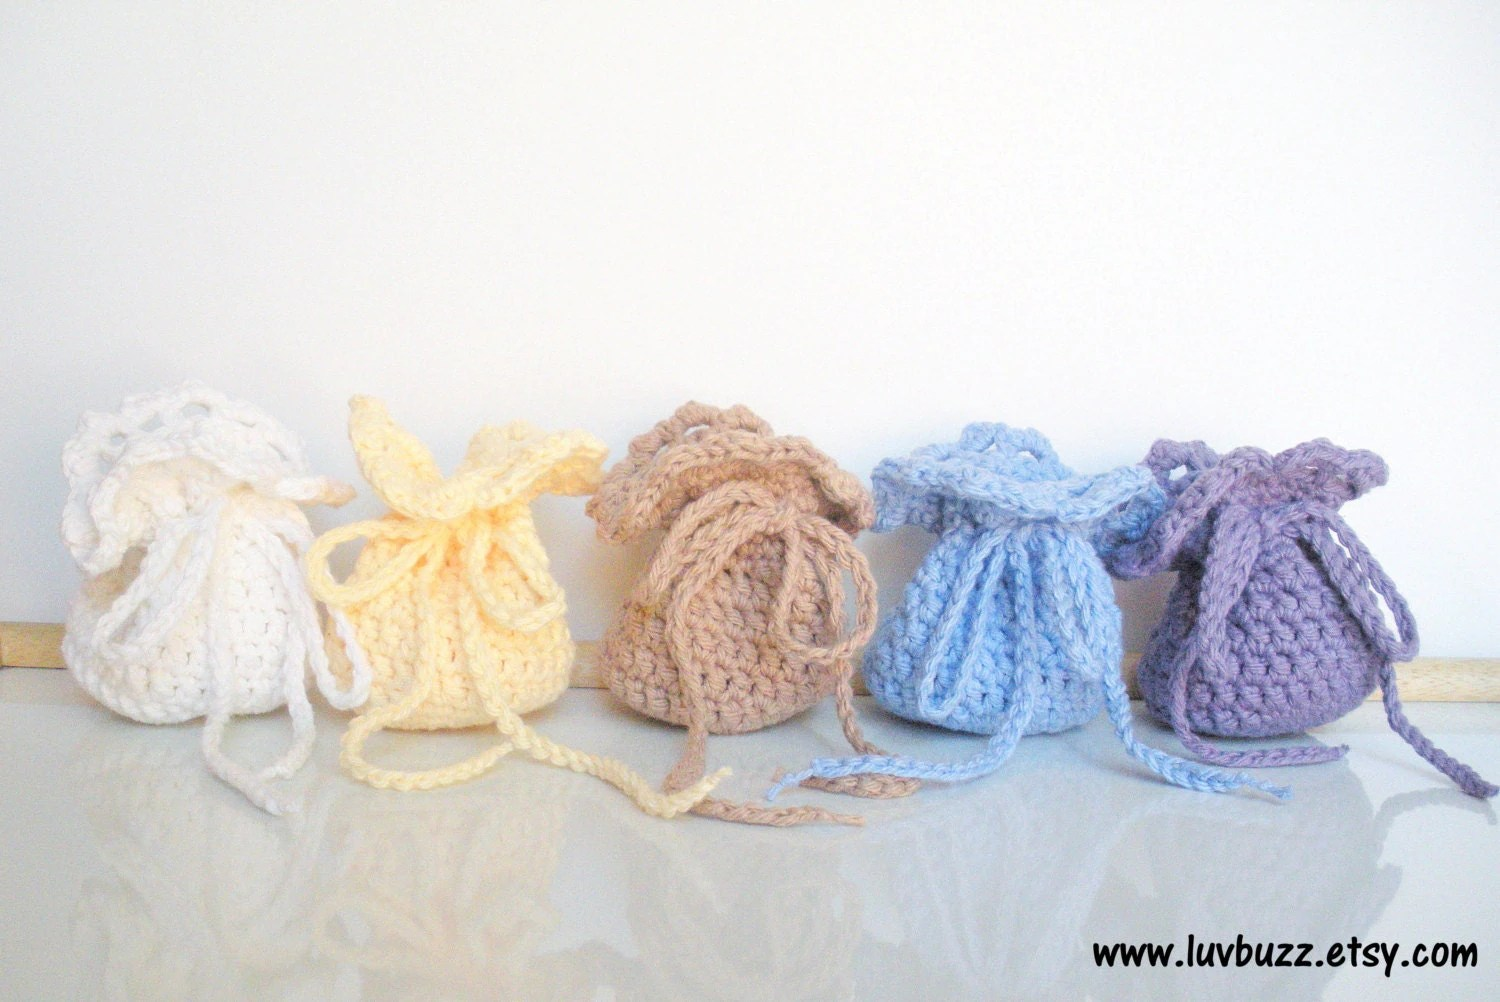 Crochet Wedding Favor Bags Set Of 20 Or More Party By Luvbuzz